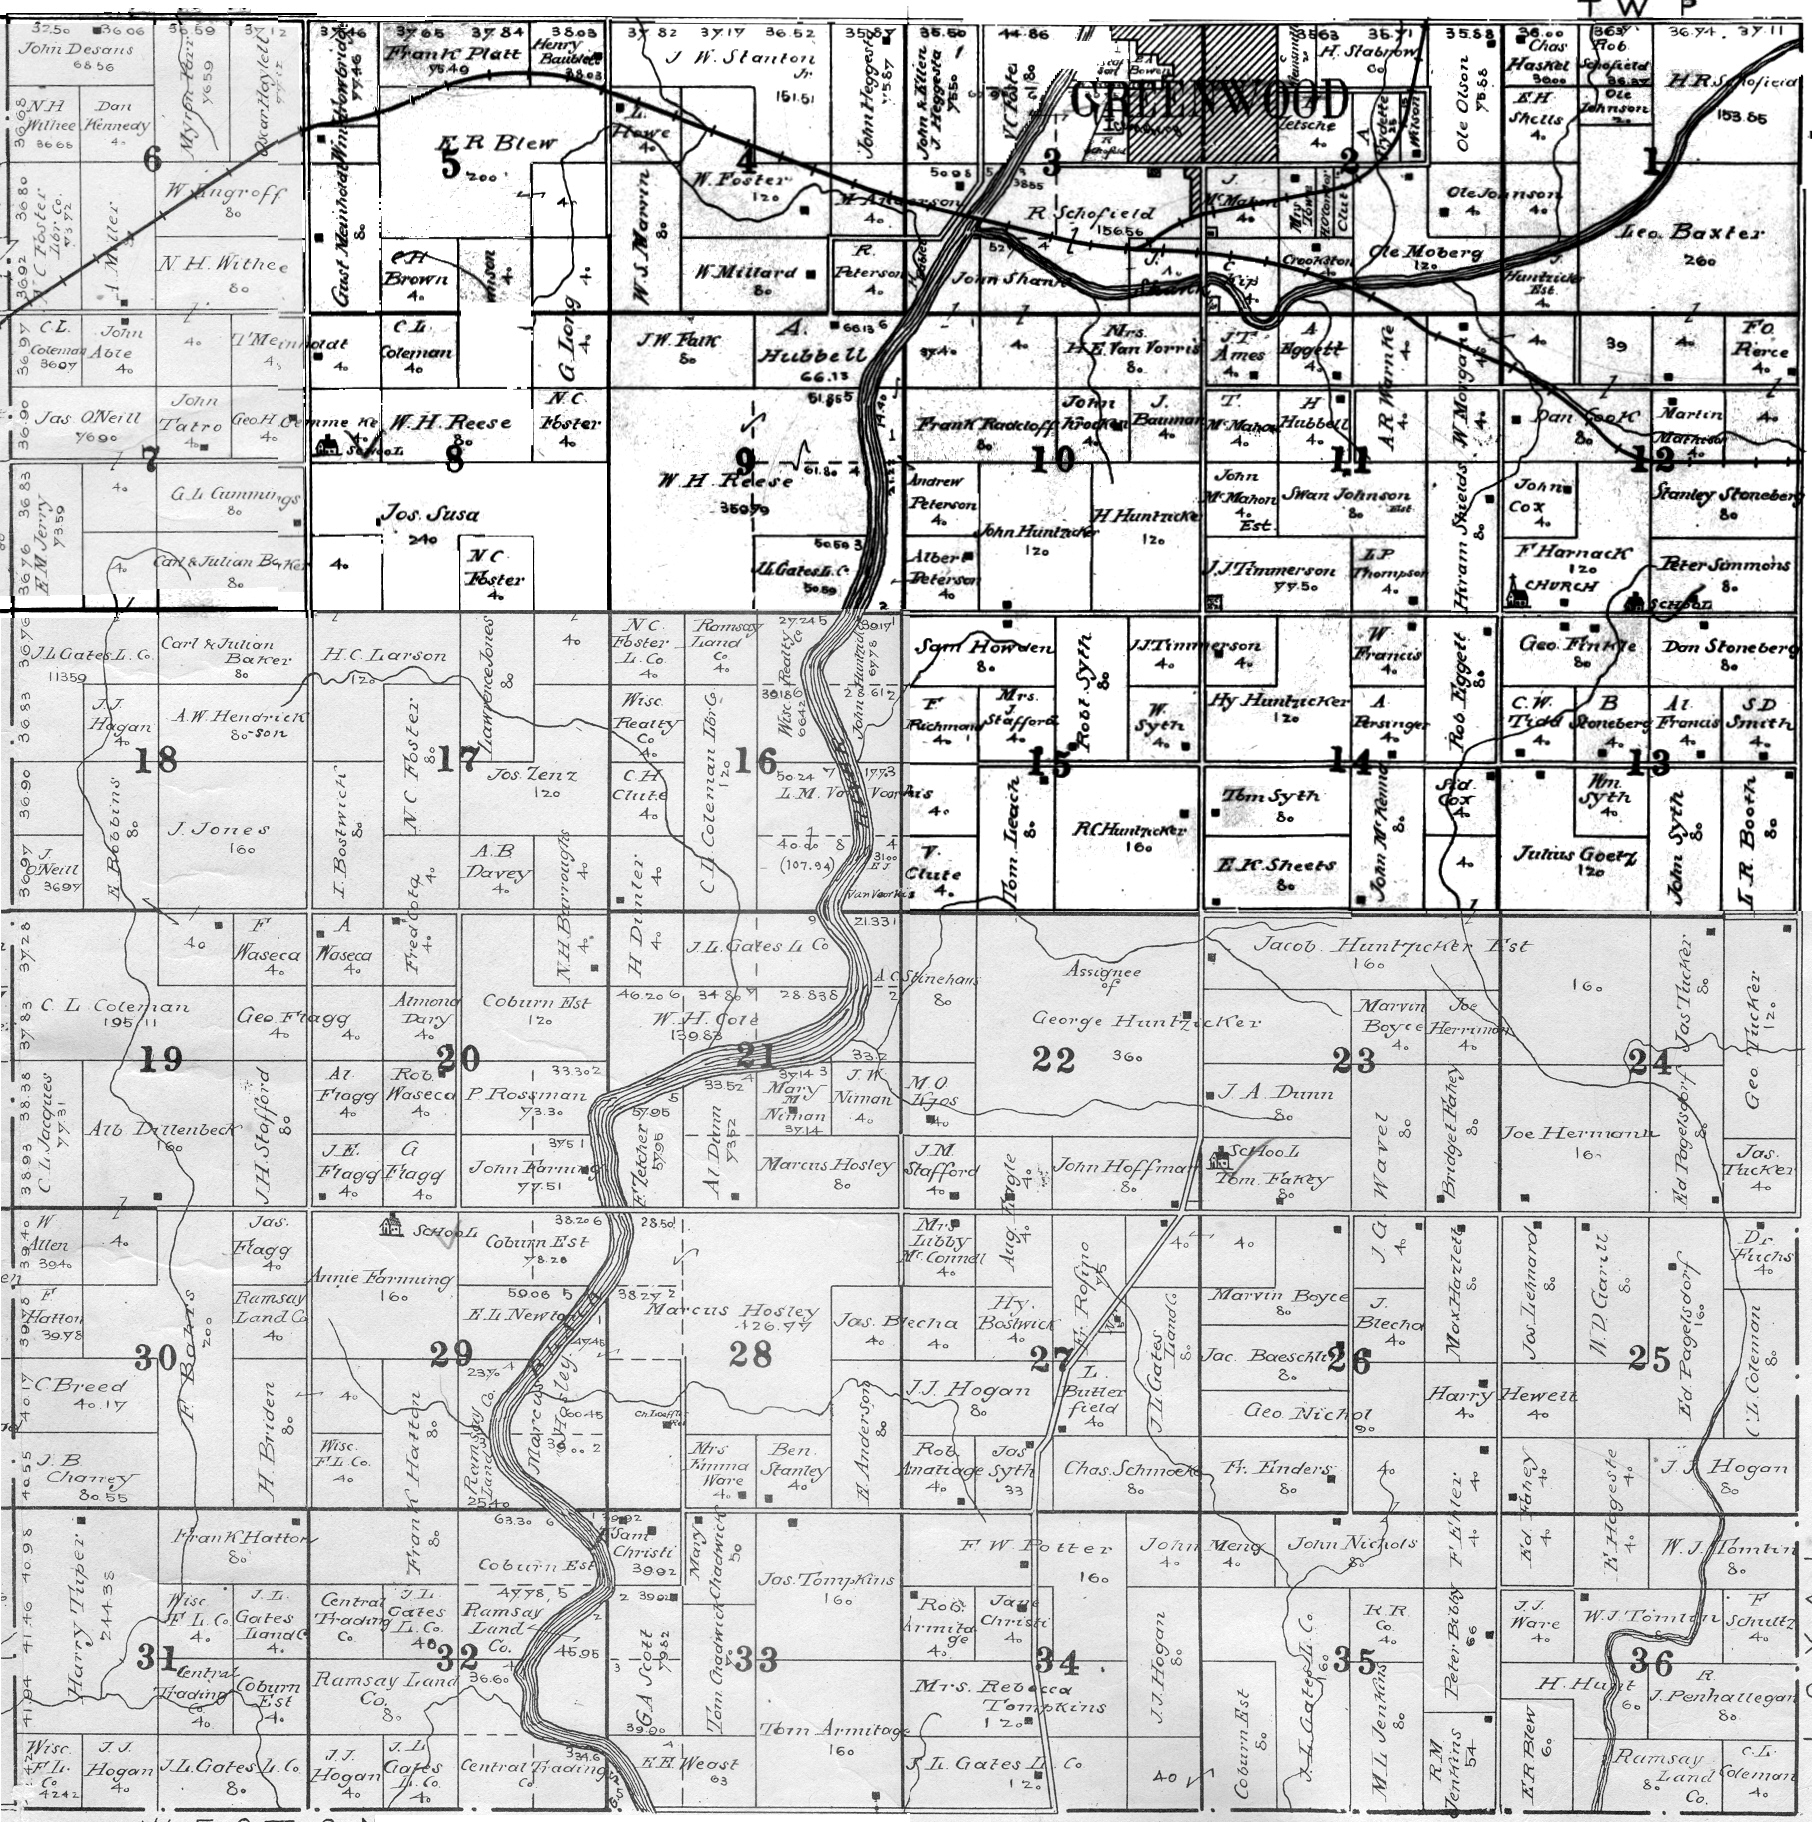 Eaton Township Clark County Plat Map Project - Chicago map by county